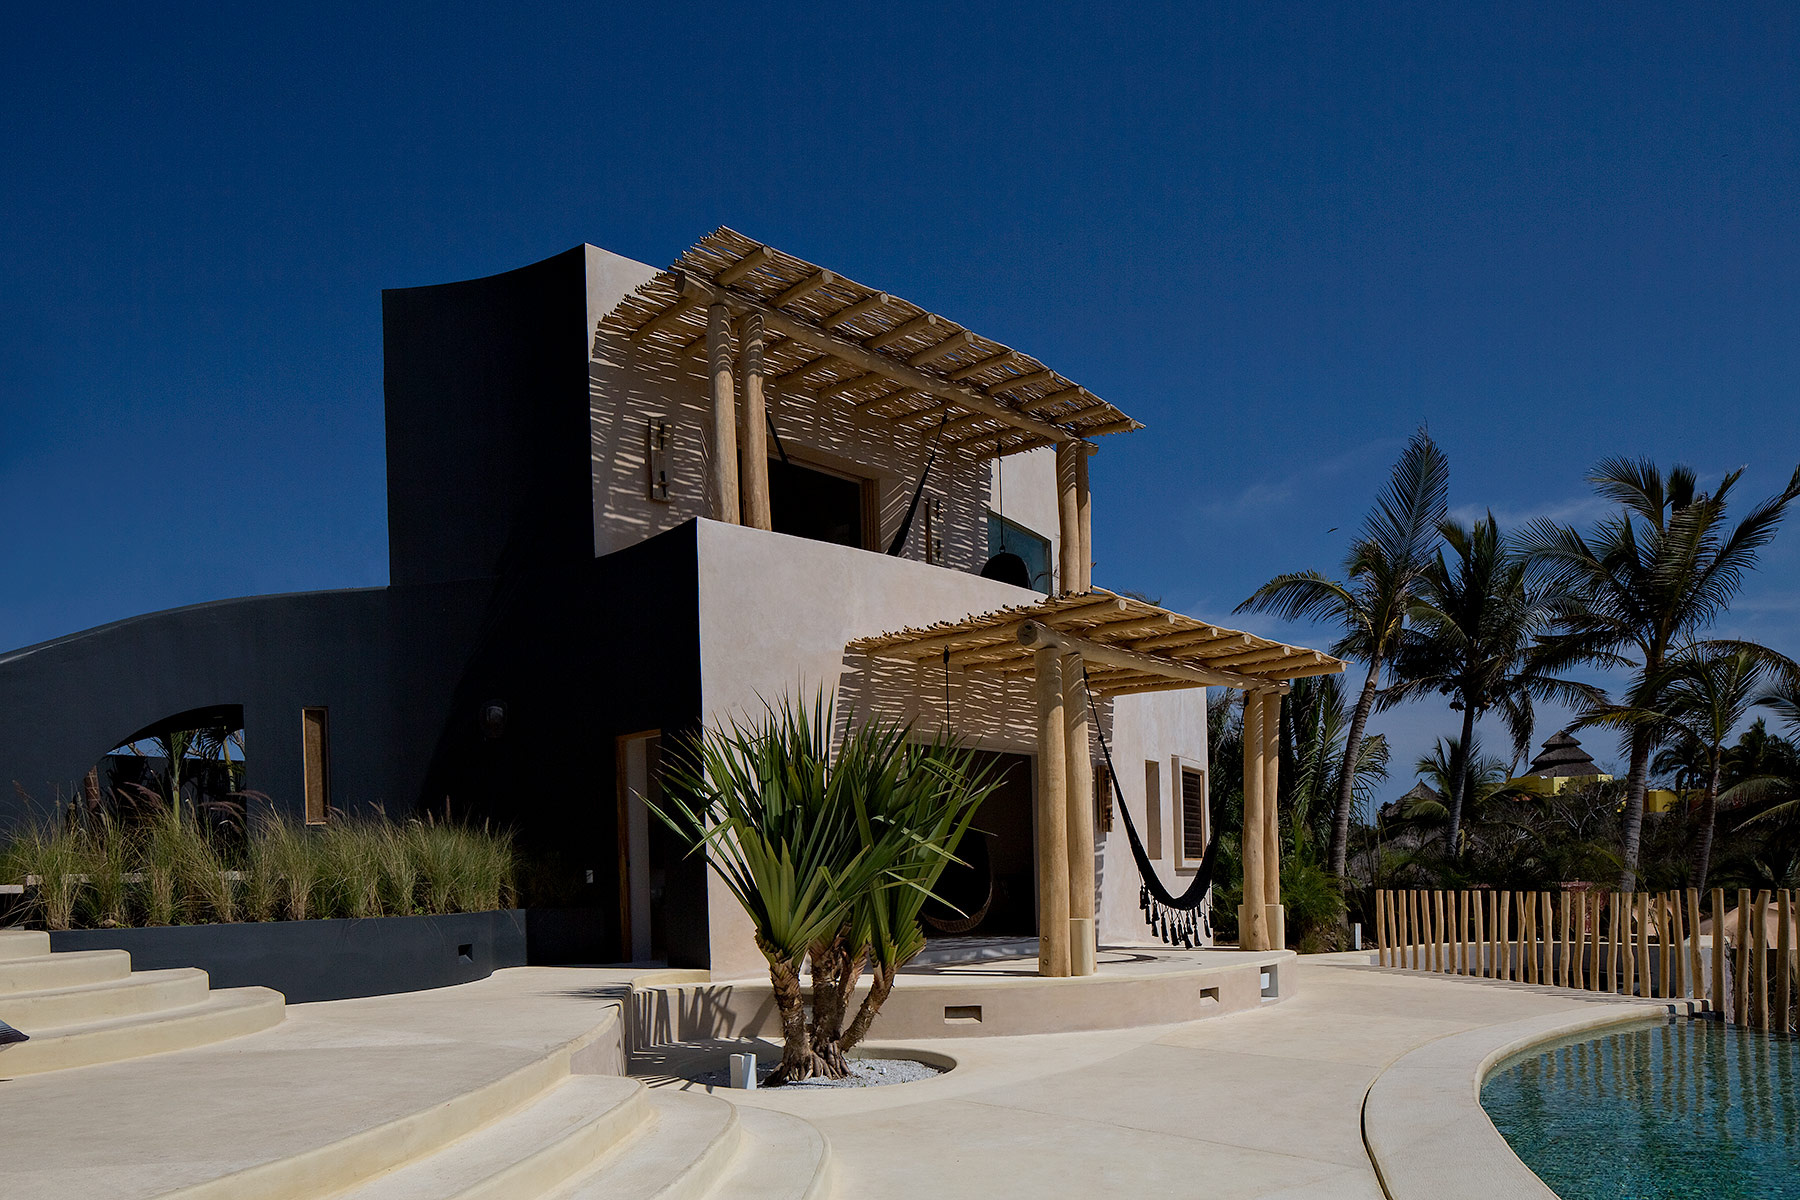 Casa natural en Careyes